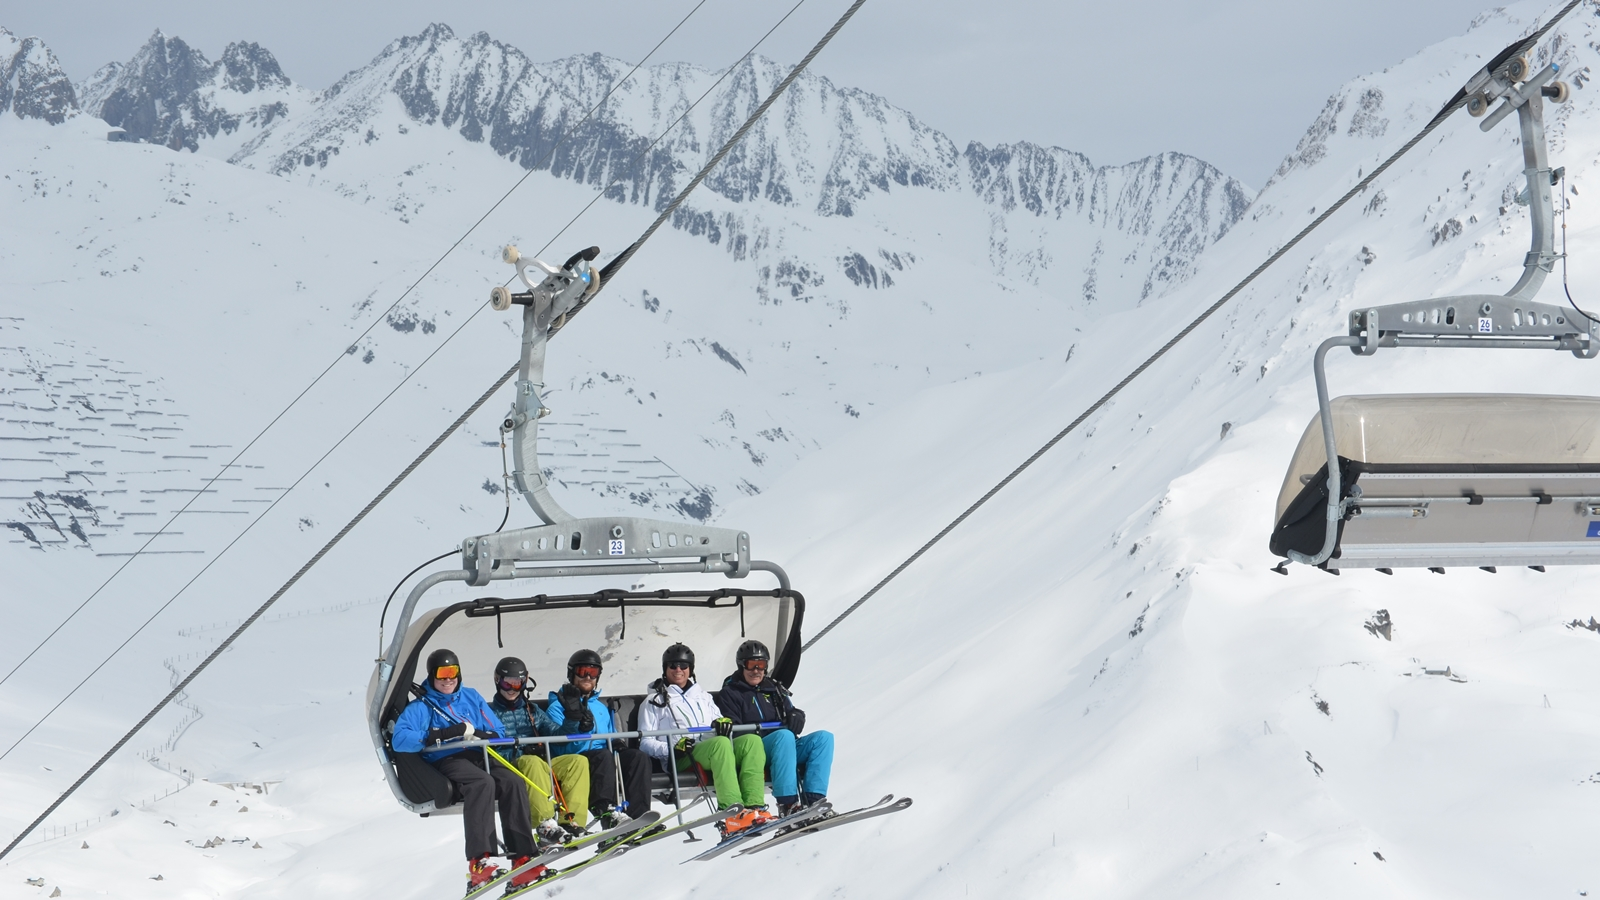 Chair Lift   Skiing   Open Slopes